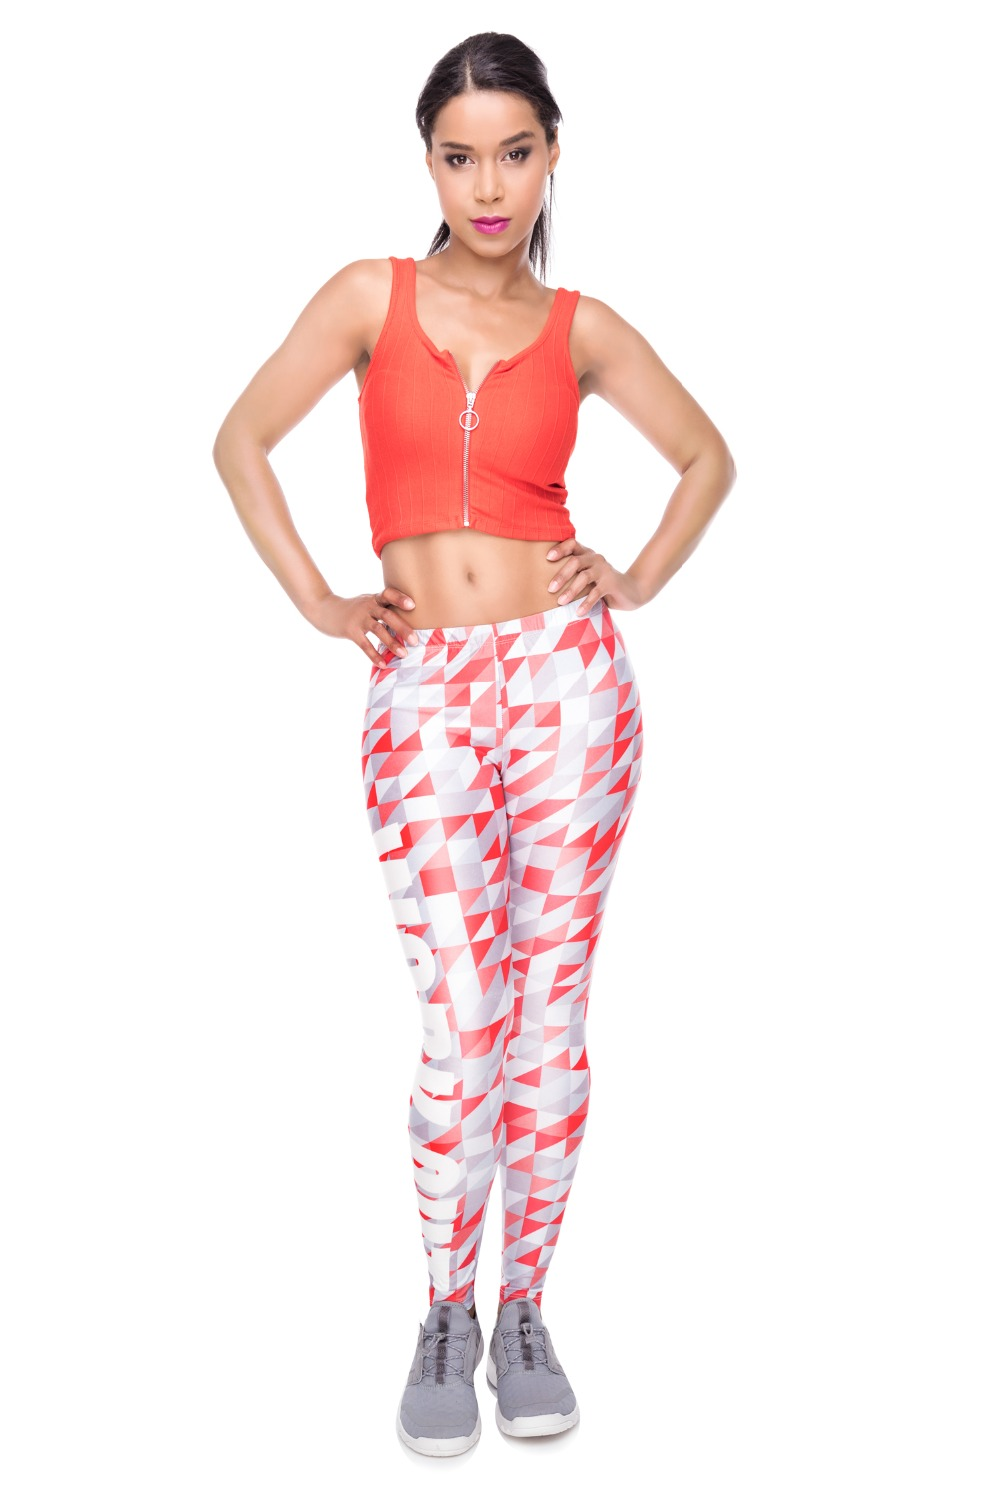 34259 WORK OUT triangle gray red (1)